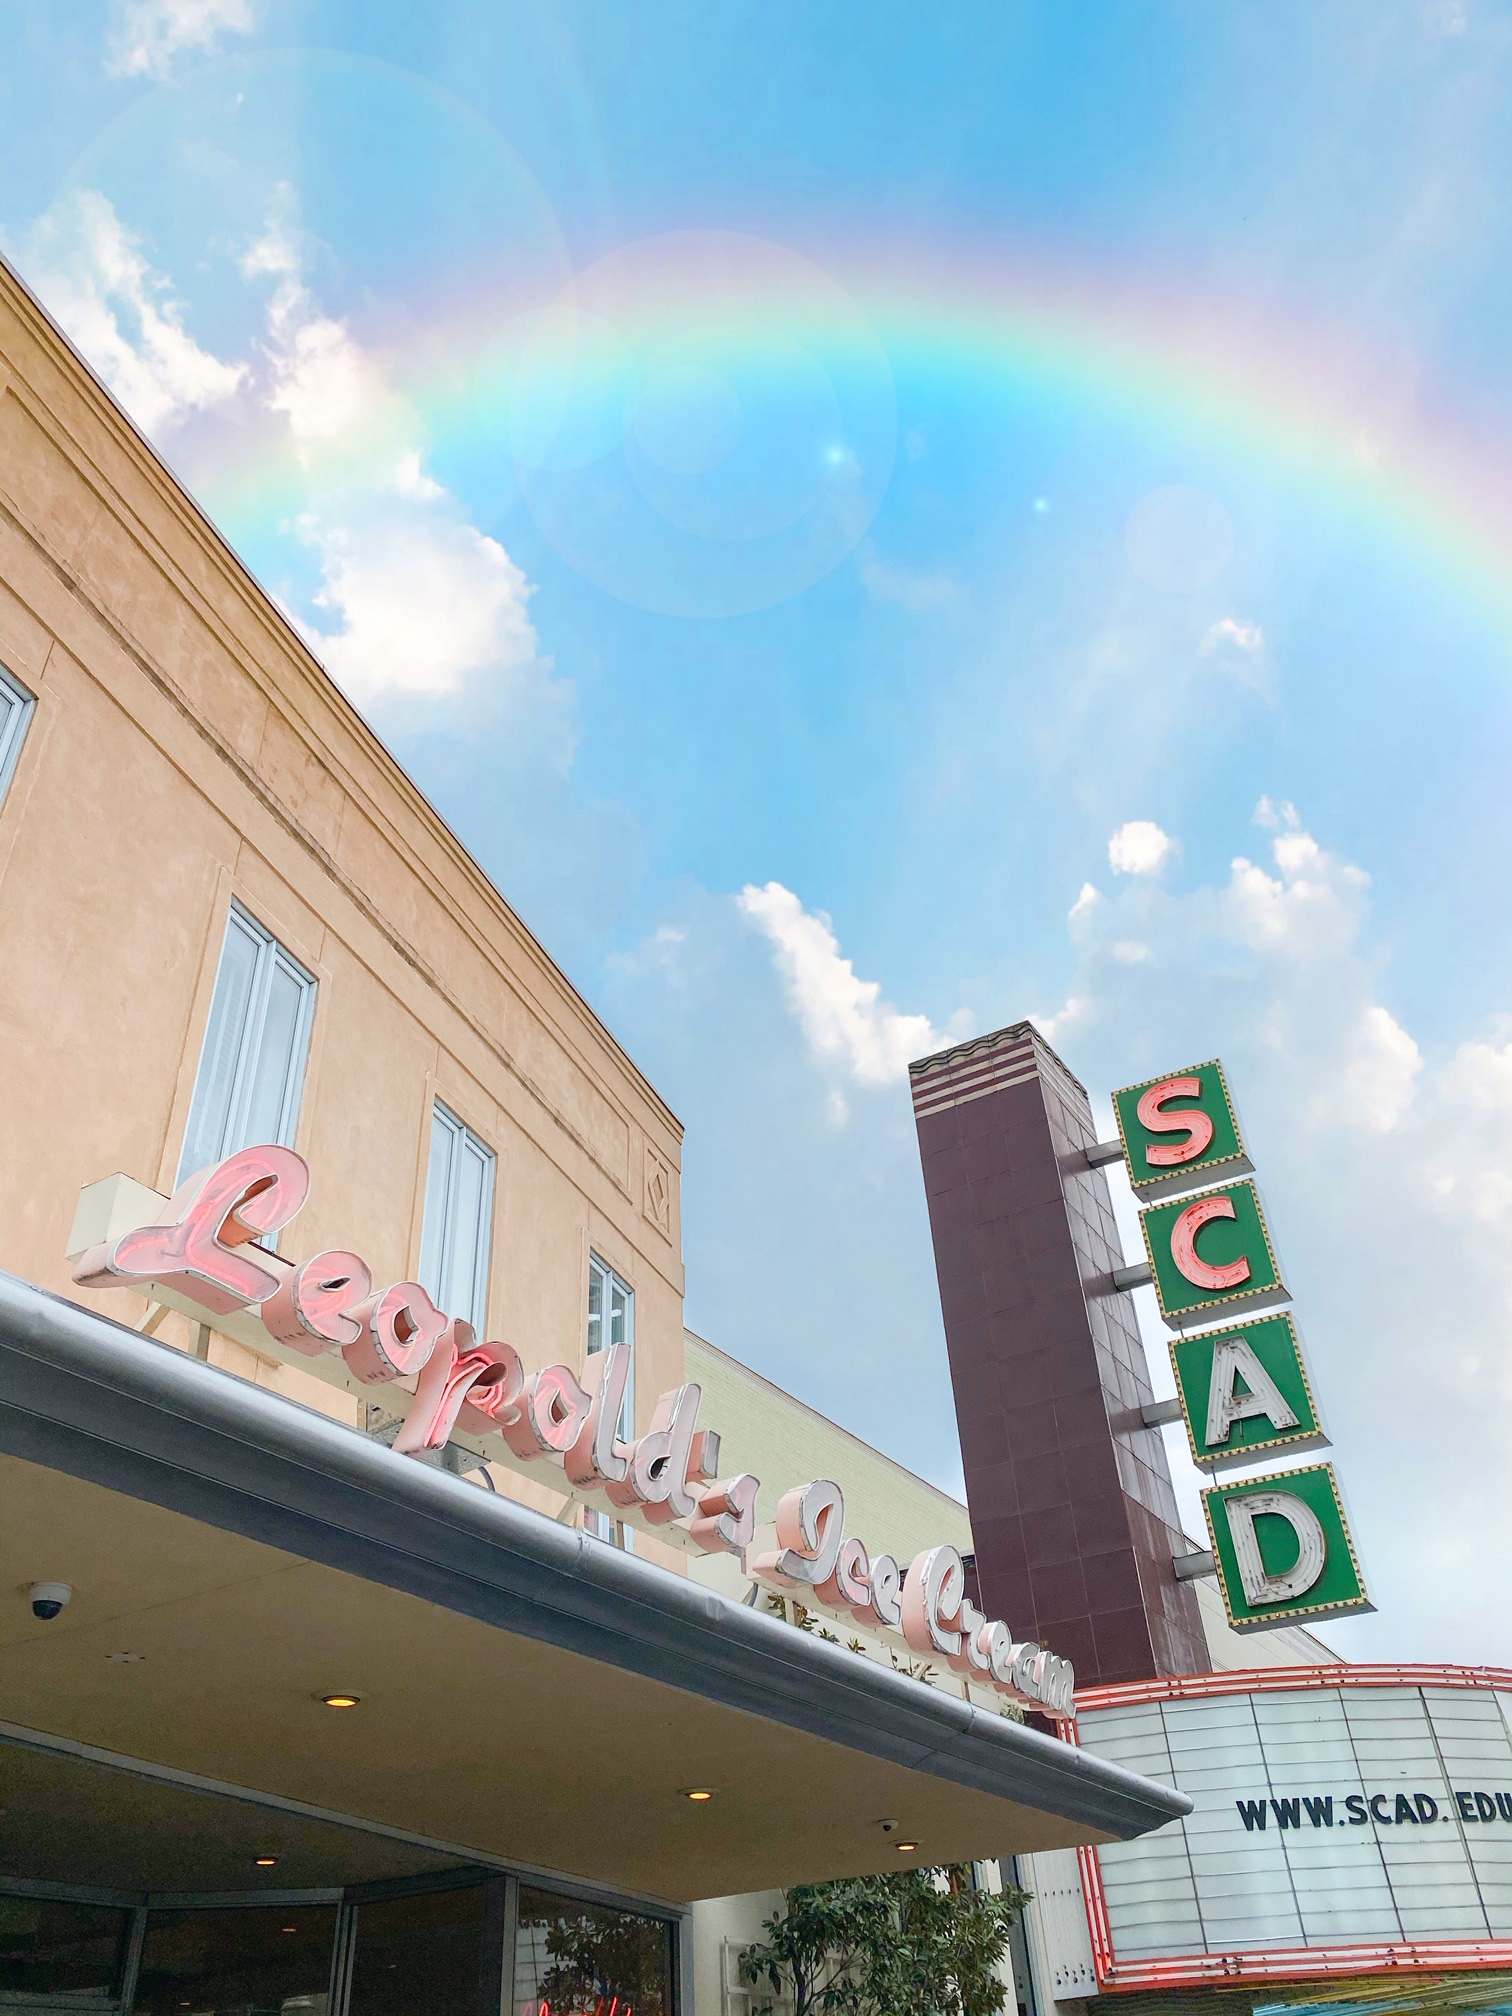 A photo looking up at the neon pink sign outside of Leopold's Ice Cream, an ice cream parlor in Savannah Georgia. The sign is very retro and has a 50's style to it. Next to the ice cream parlor, there is a sign for a SCAD theater which is also a neon sign. It is a sunny day and there is a rainbow in the sky.